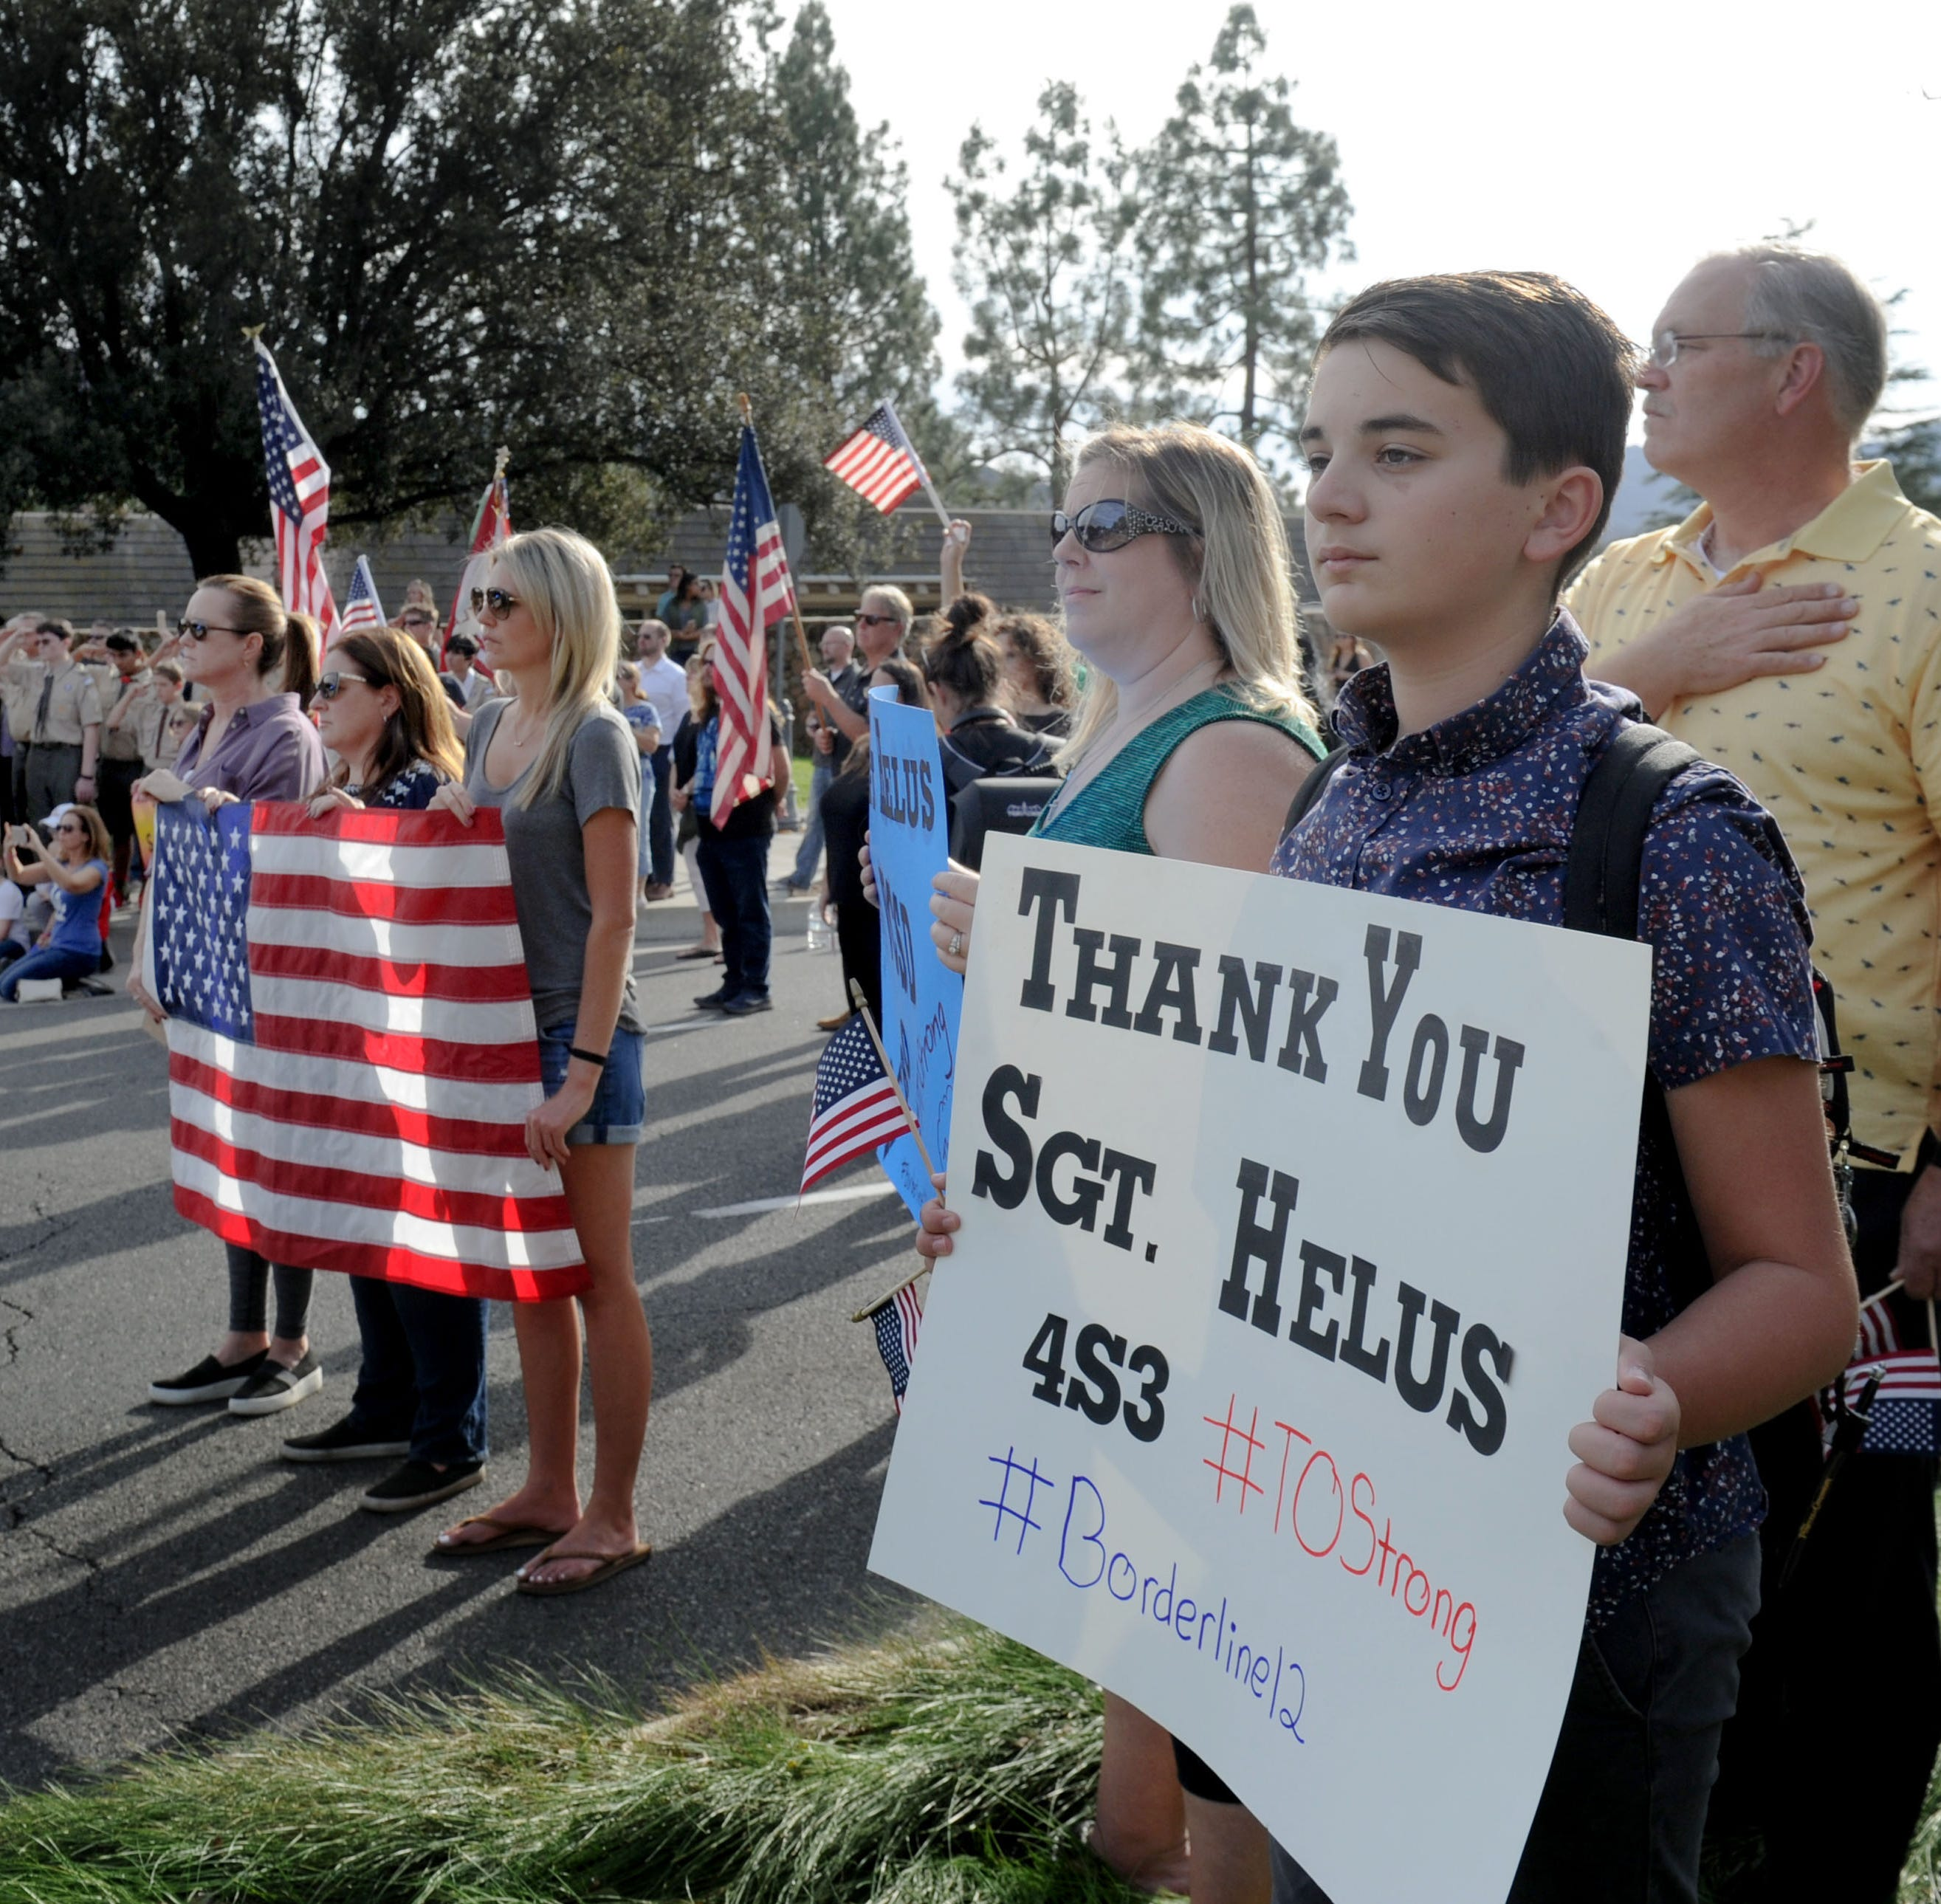 They came to honor a Ventura County sheriff's sergeant who died saving others